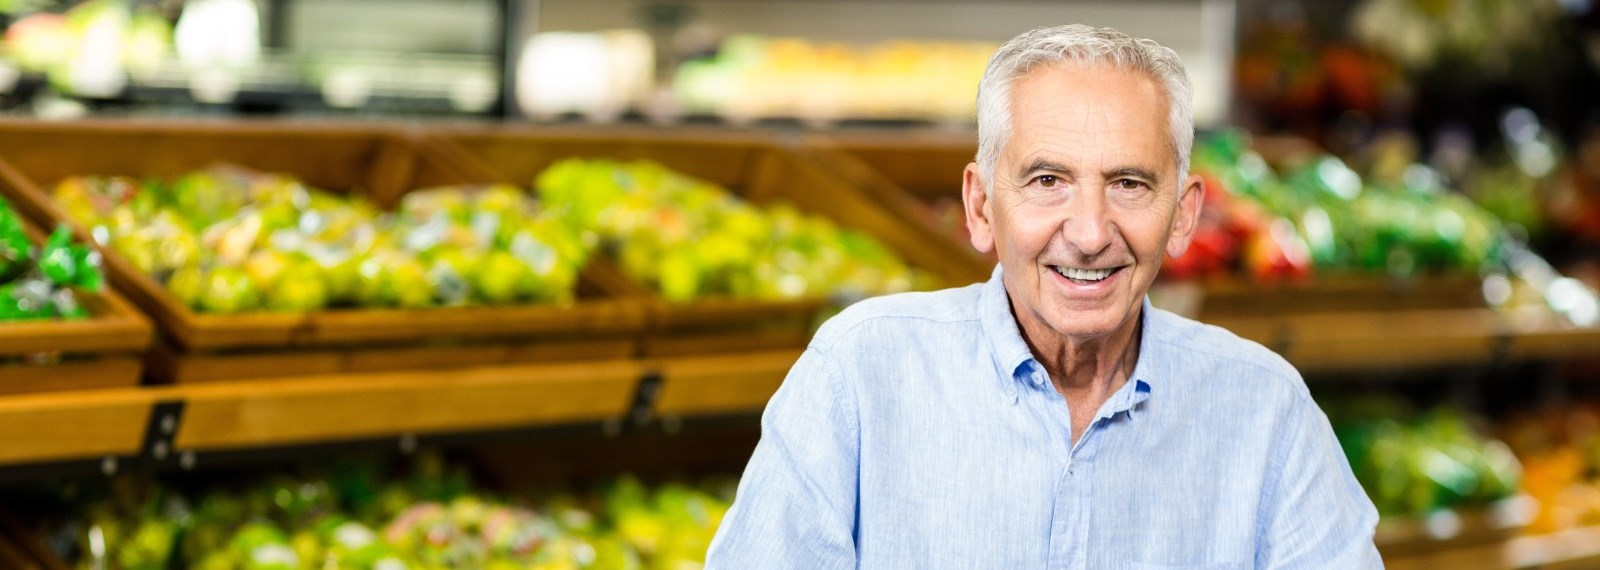 senior man shopping in a grocery store